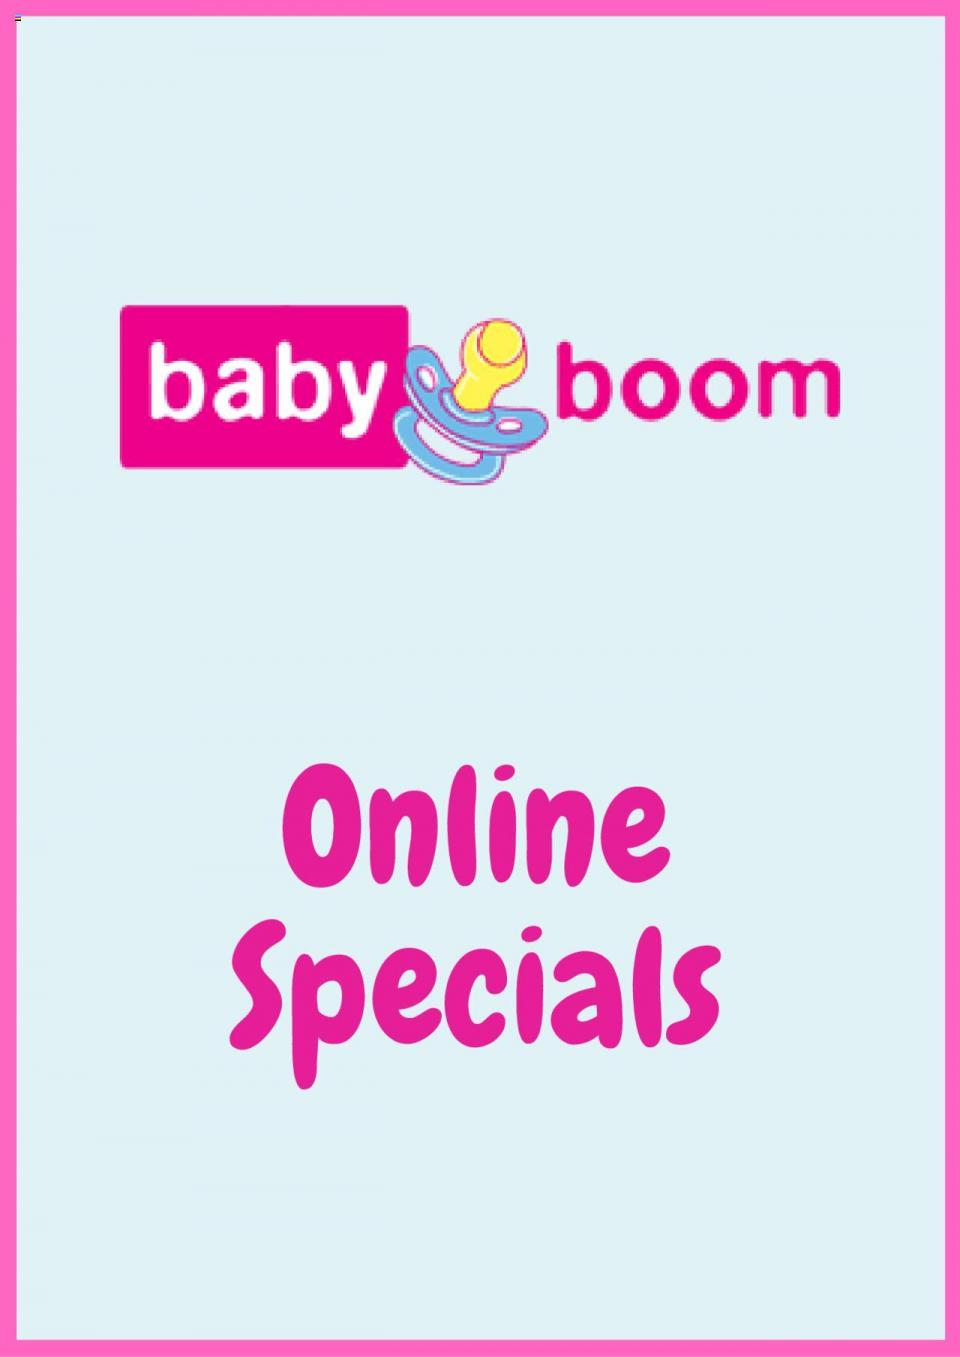 baby boom specials 5 may 2020